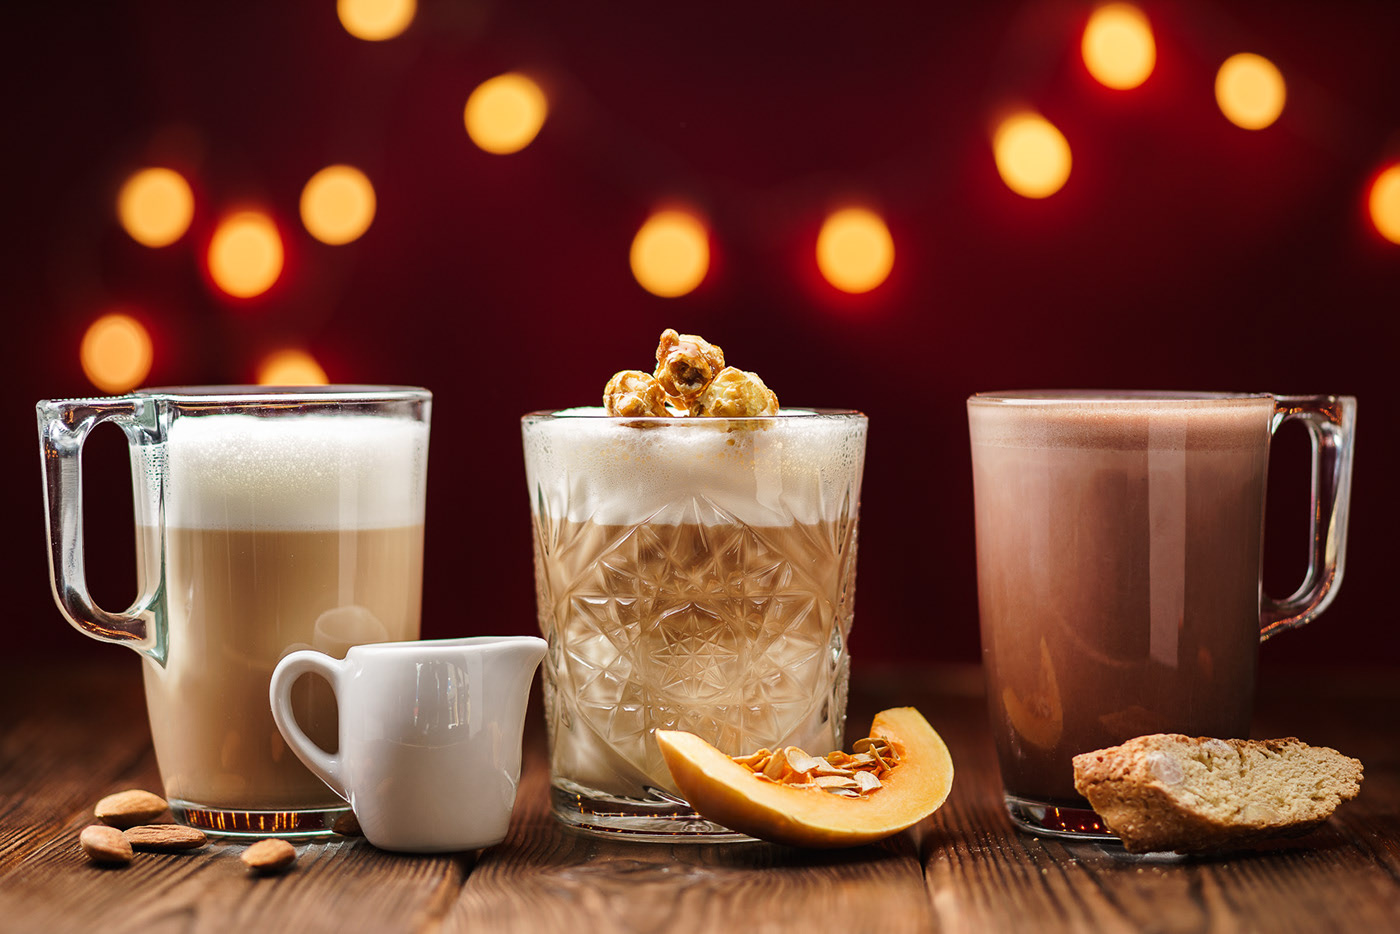 Hot beverages   autumn drinks photography - фотограф Max Smolyar